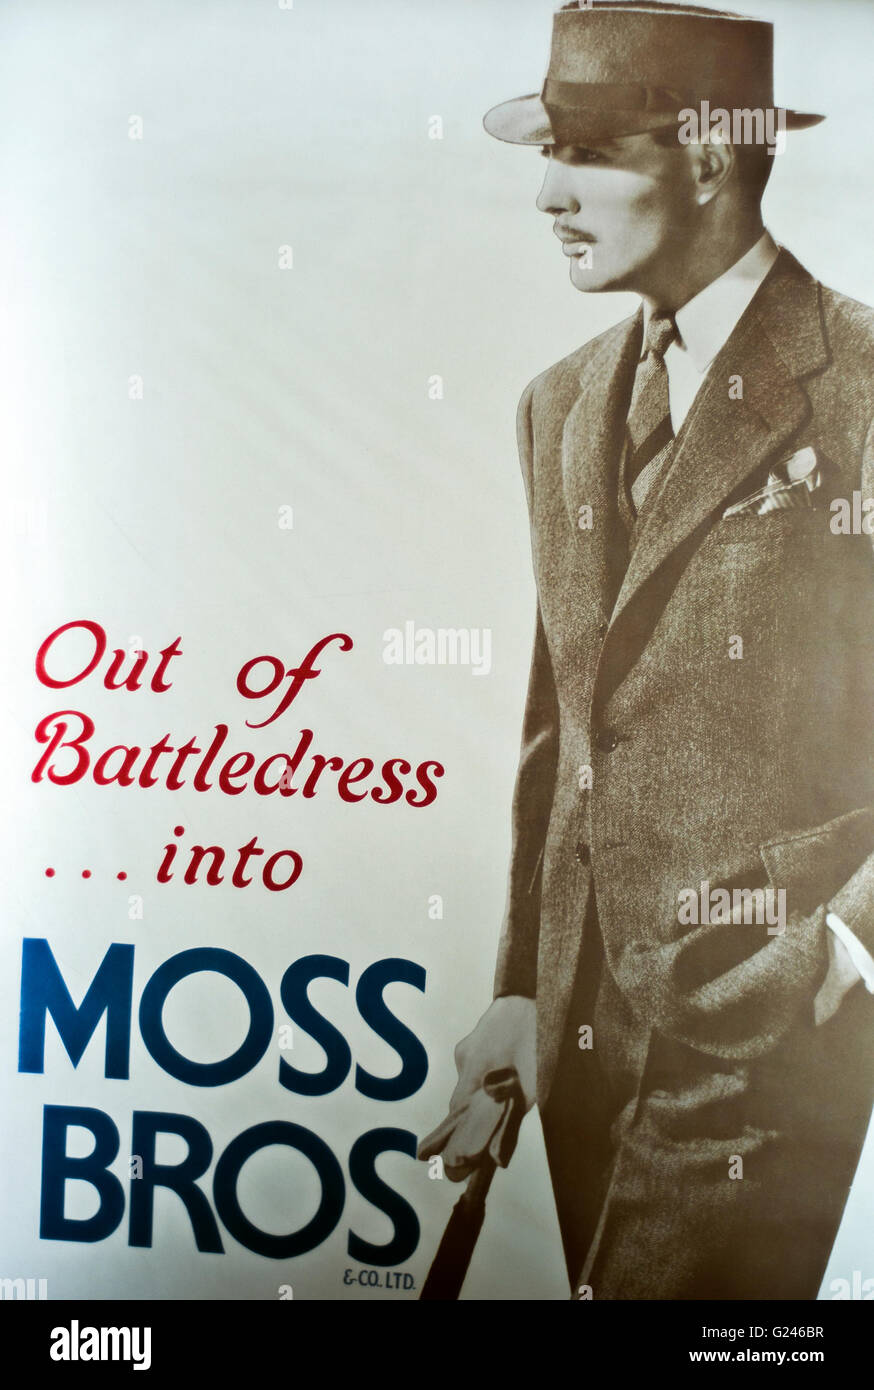 Poster Moss Bros, clothing company, mens suits,hat and umbrella post war ,'Out of battledress into Moss Bros' - Stock Image